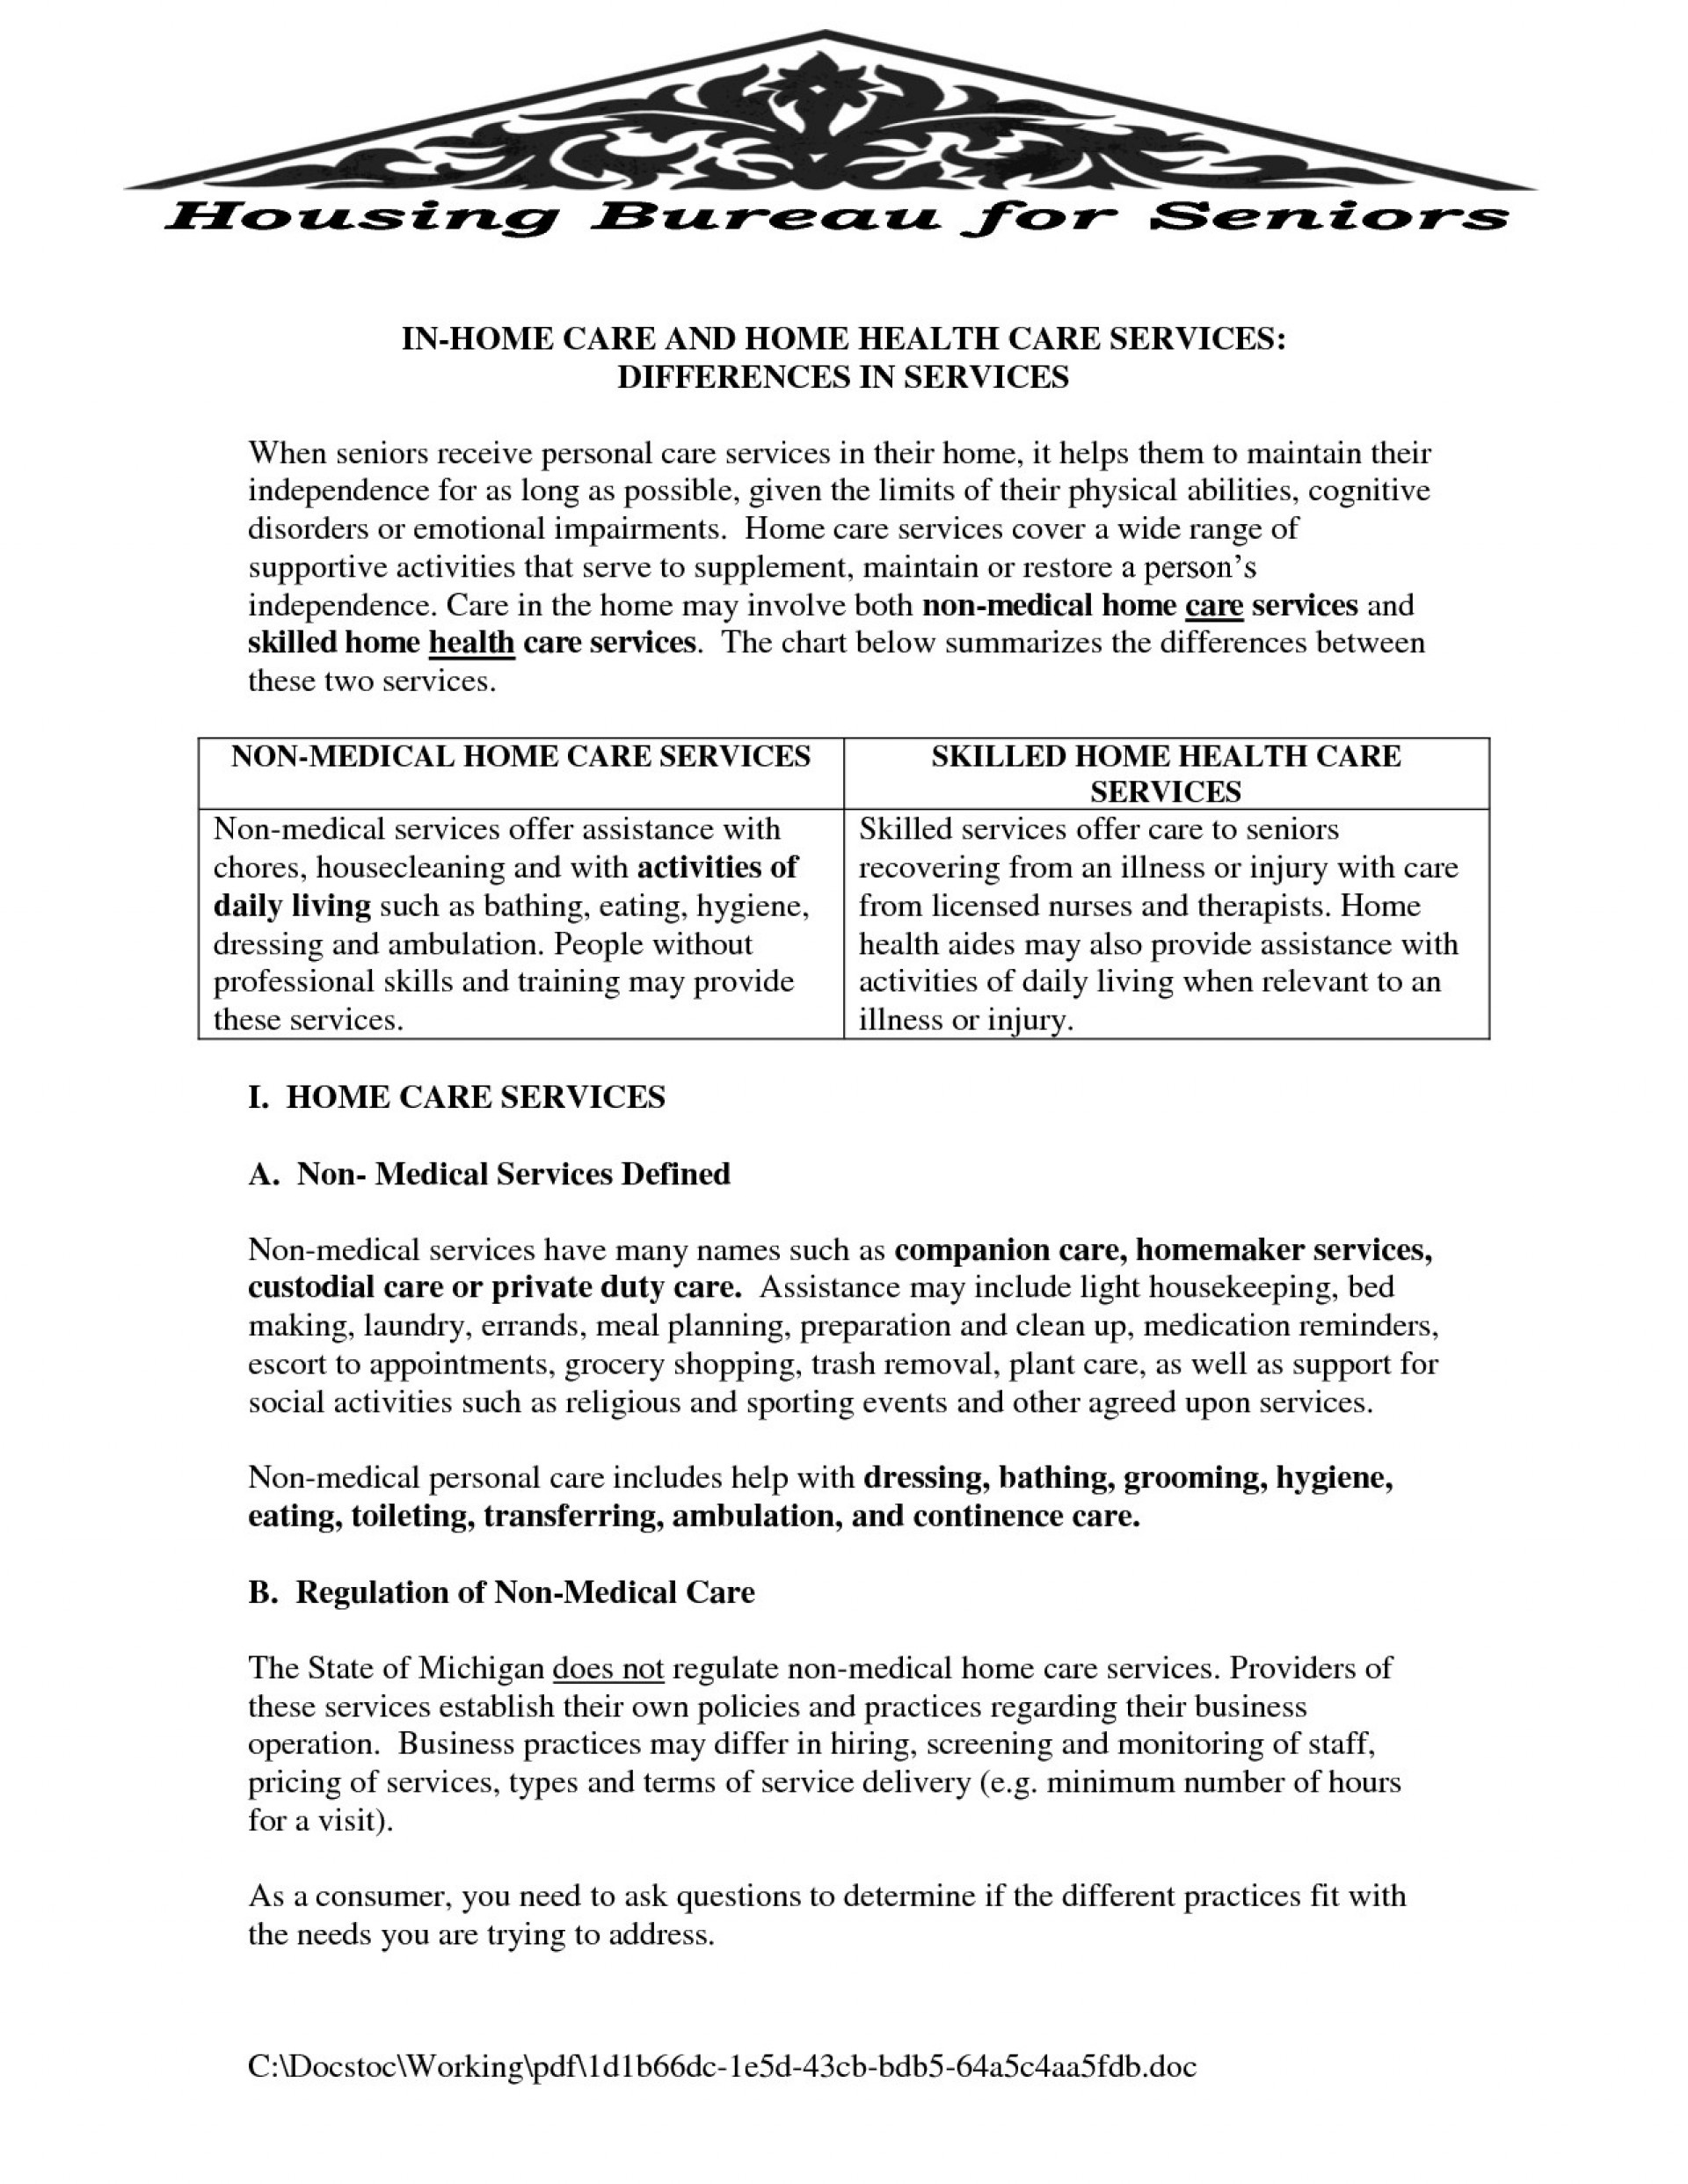 010 Home Health Care Business Plan Free Of ~ Tinypetition - Free Printable Inservices For Home Health Aides